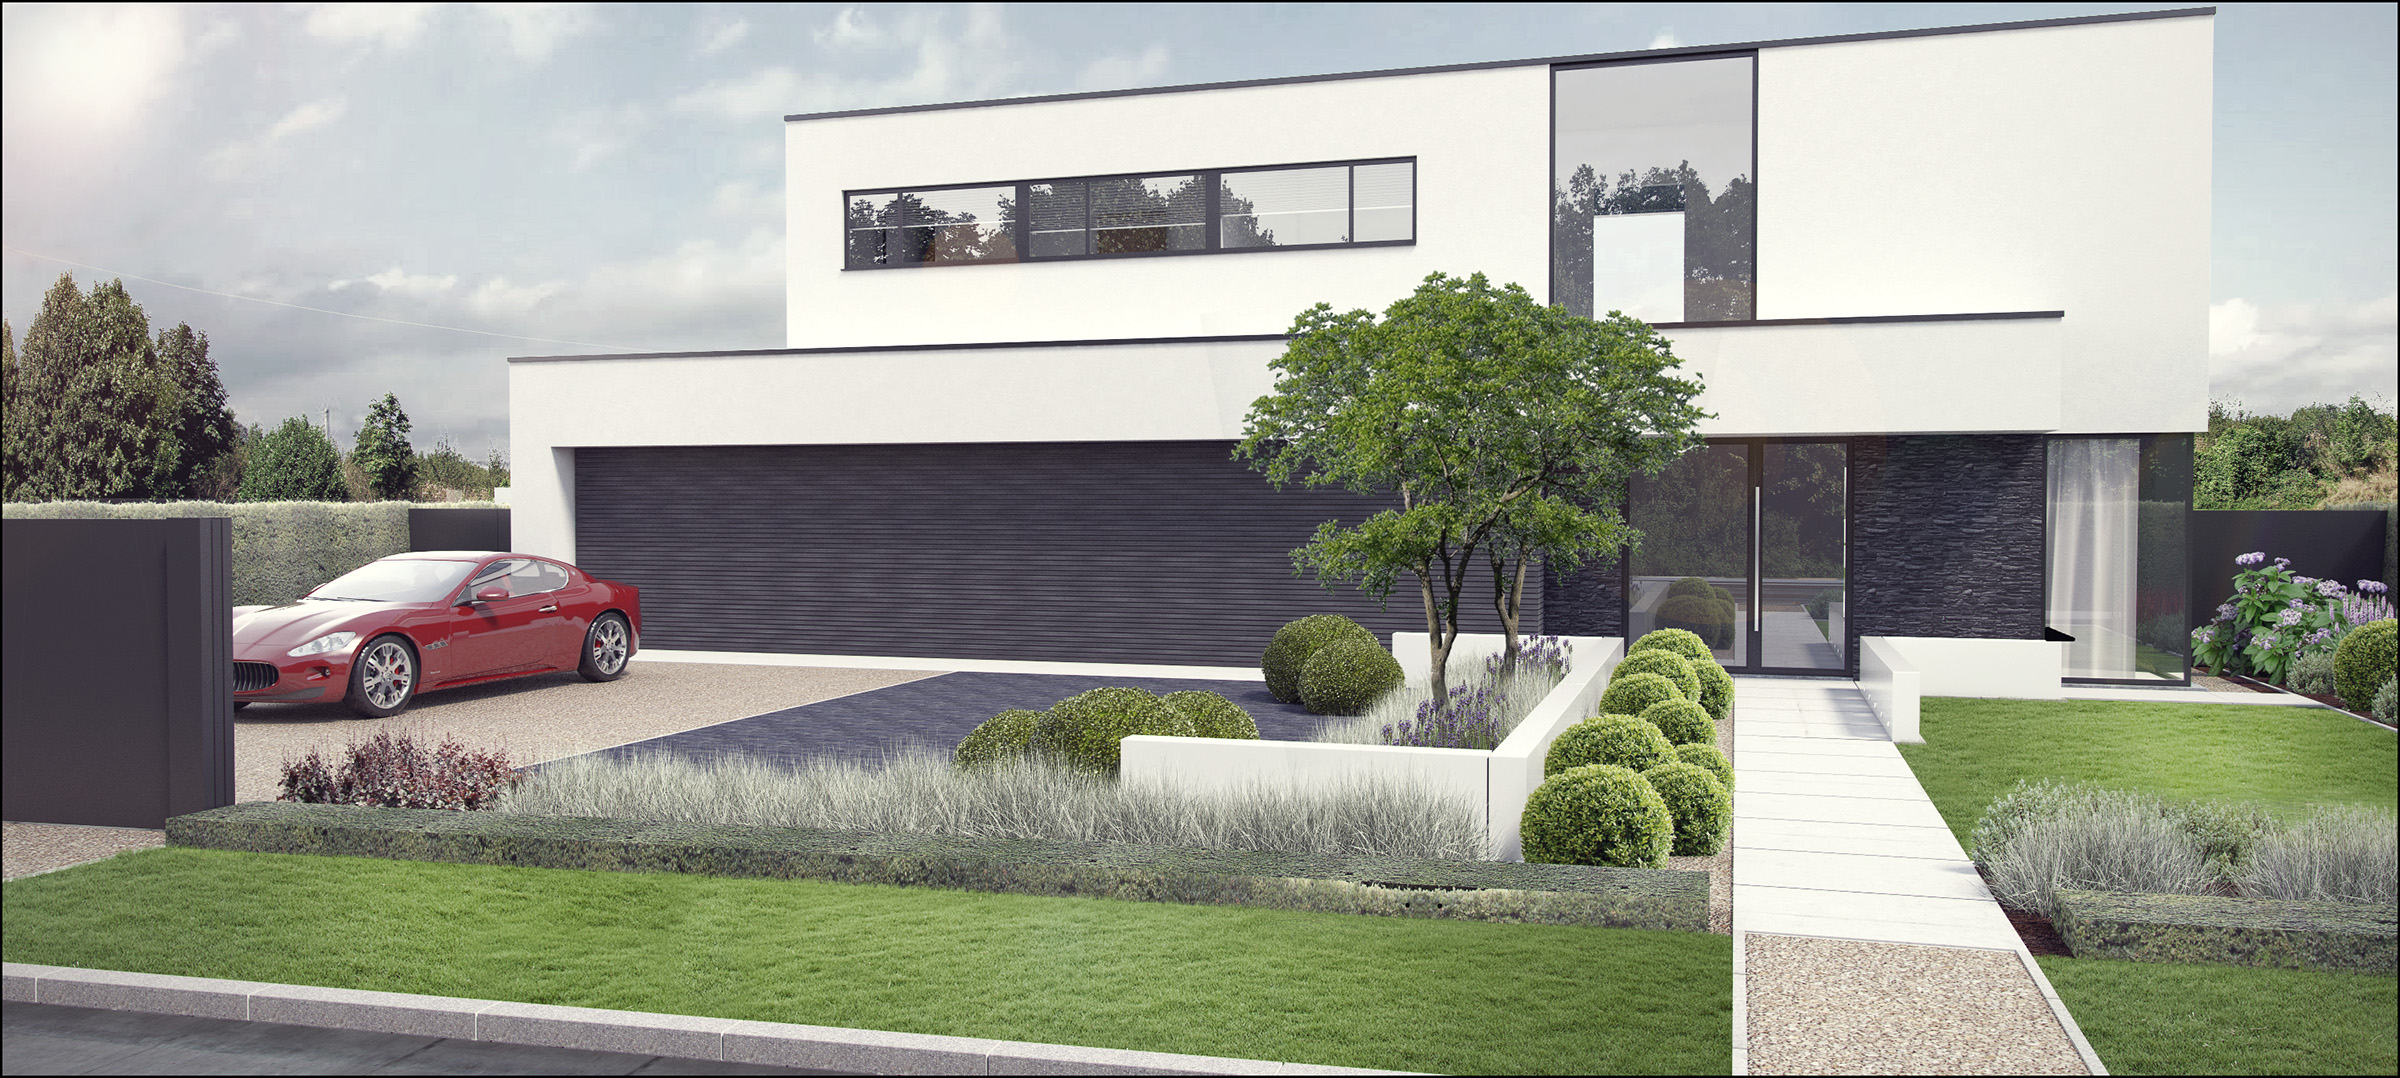 Eco tuinarchitectengroep 3d projecten tuin moderne woning - Outs allee tuin ...